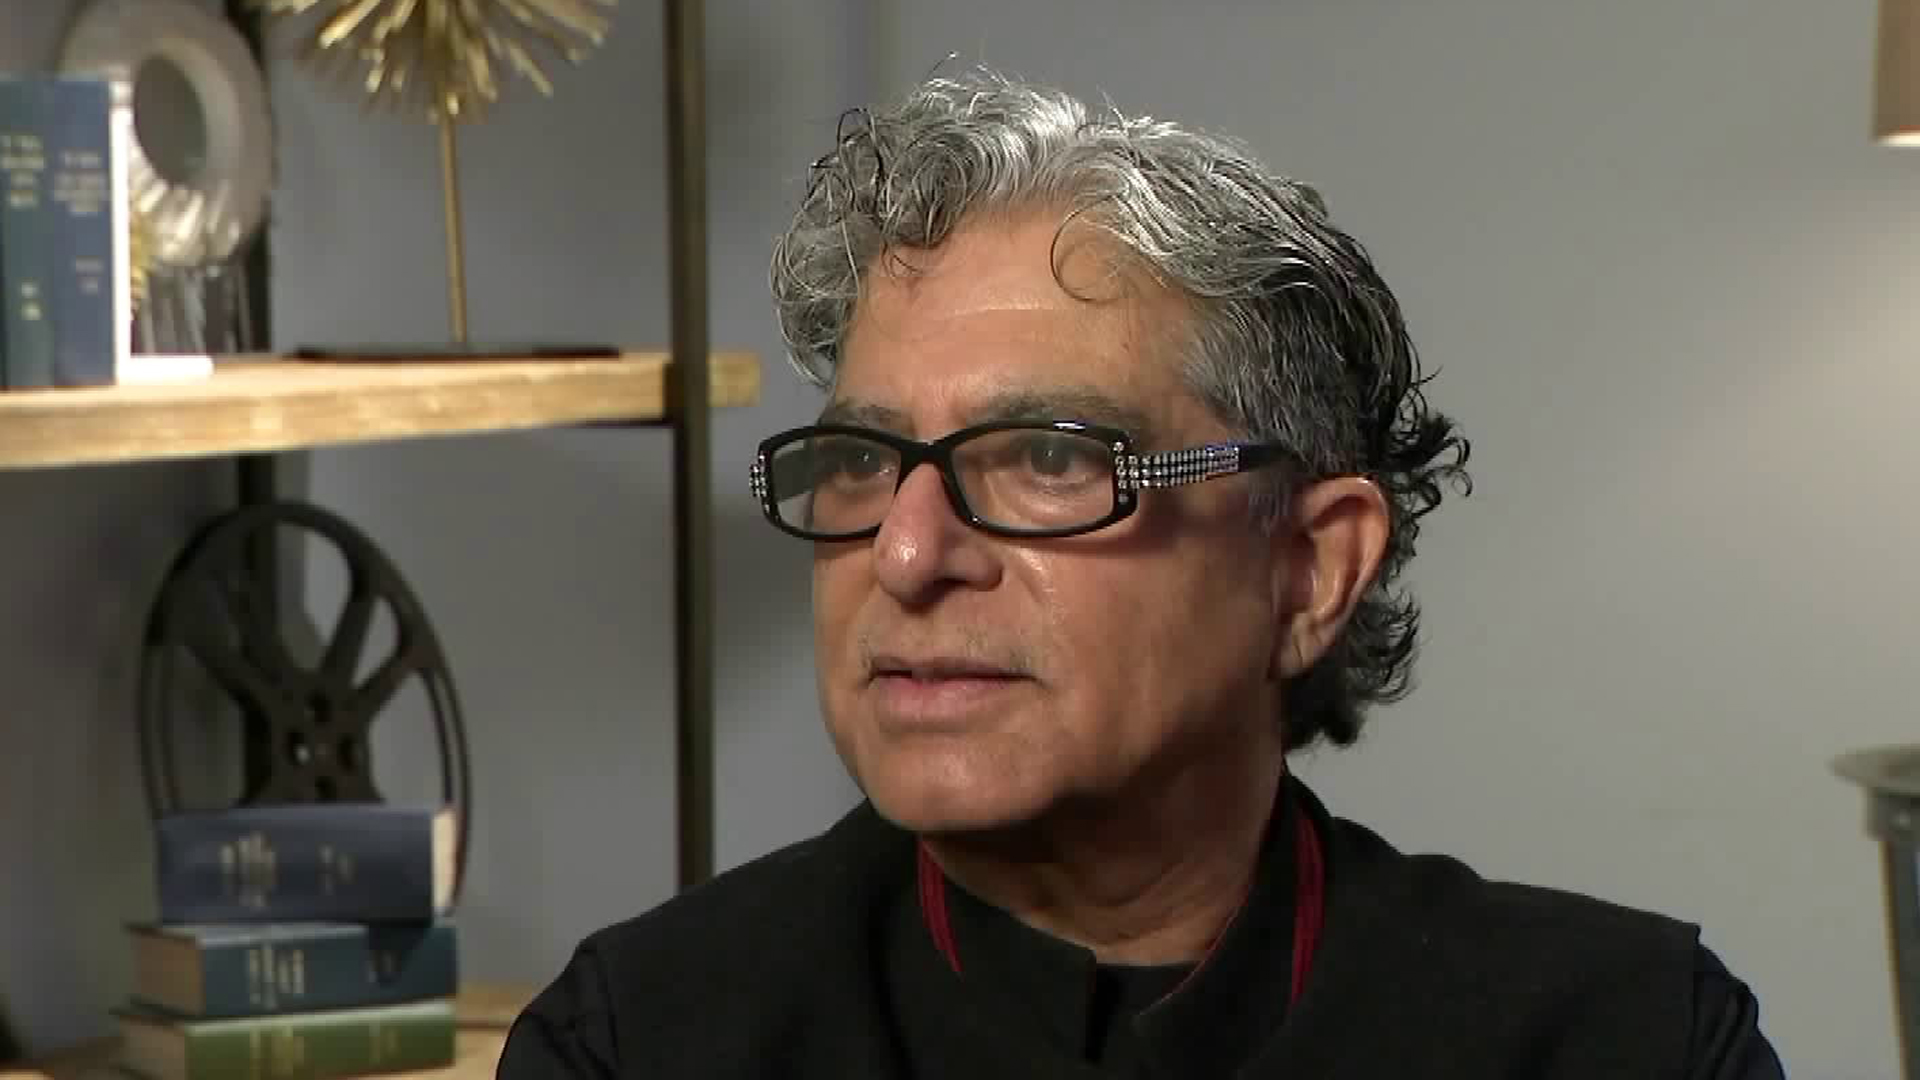 Deepak Chopra speaks with Christina Pascucci for the KTLA 5 News on Nov. 20, 2018. (Credit: KTLA)